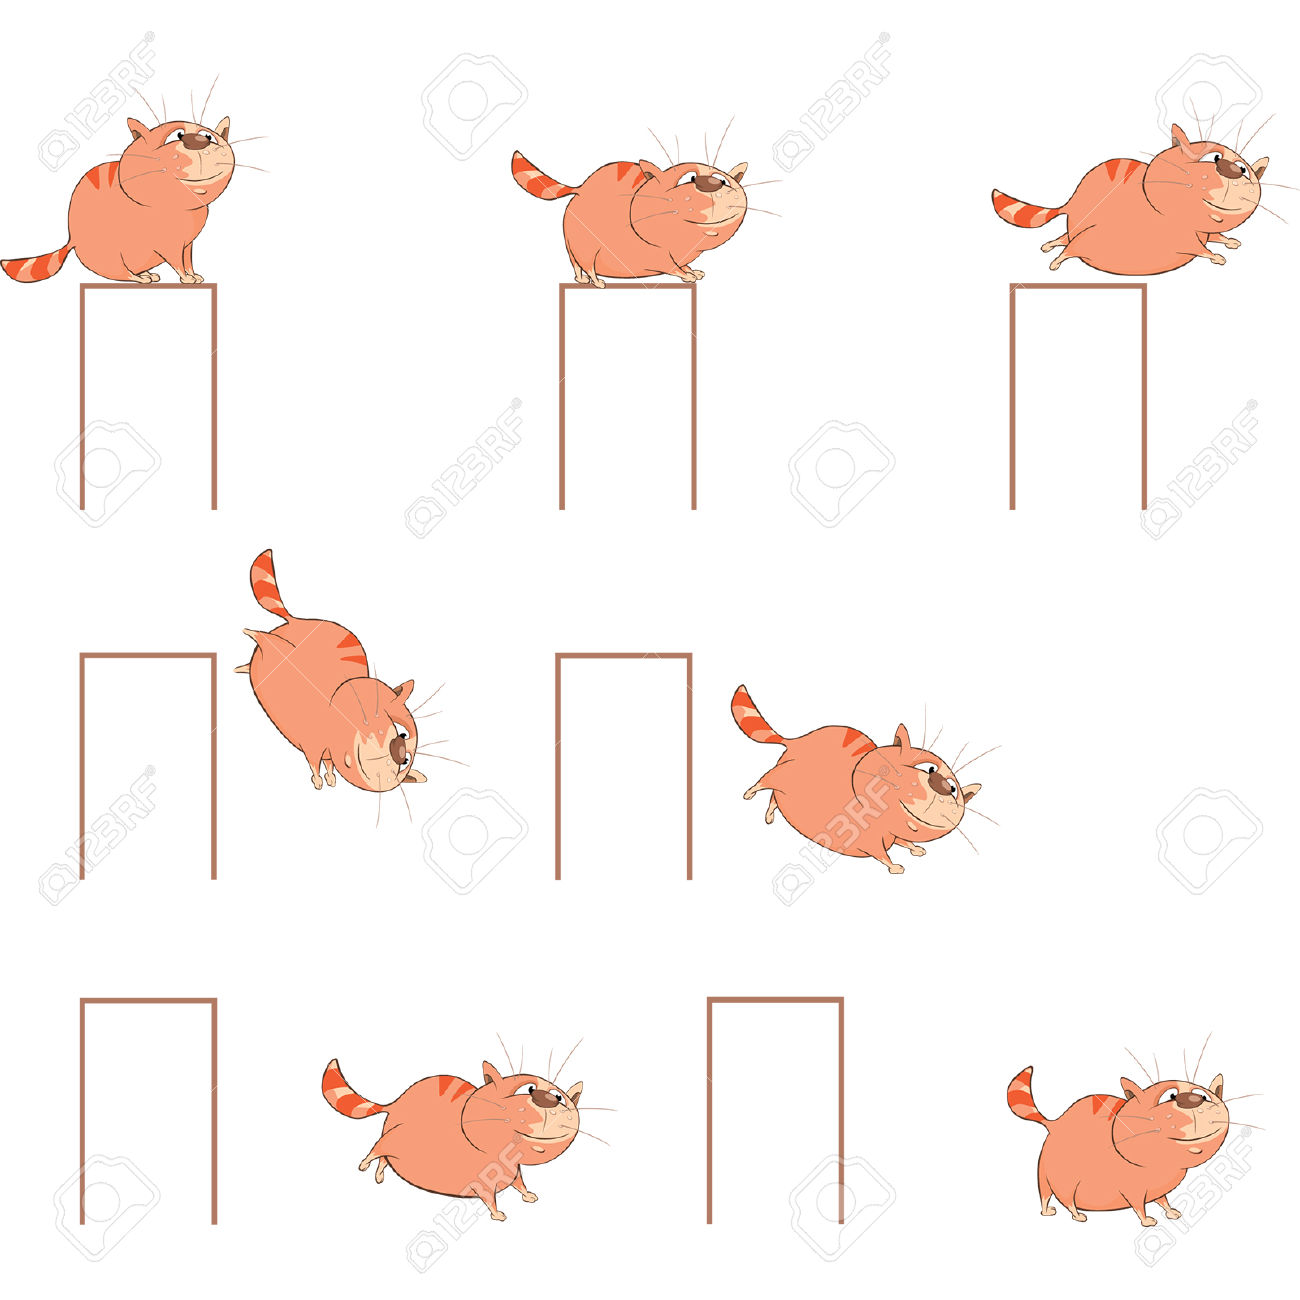 Character clipart to use for storyboarding. Cartoon cute cat a